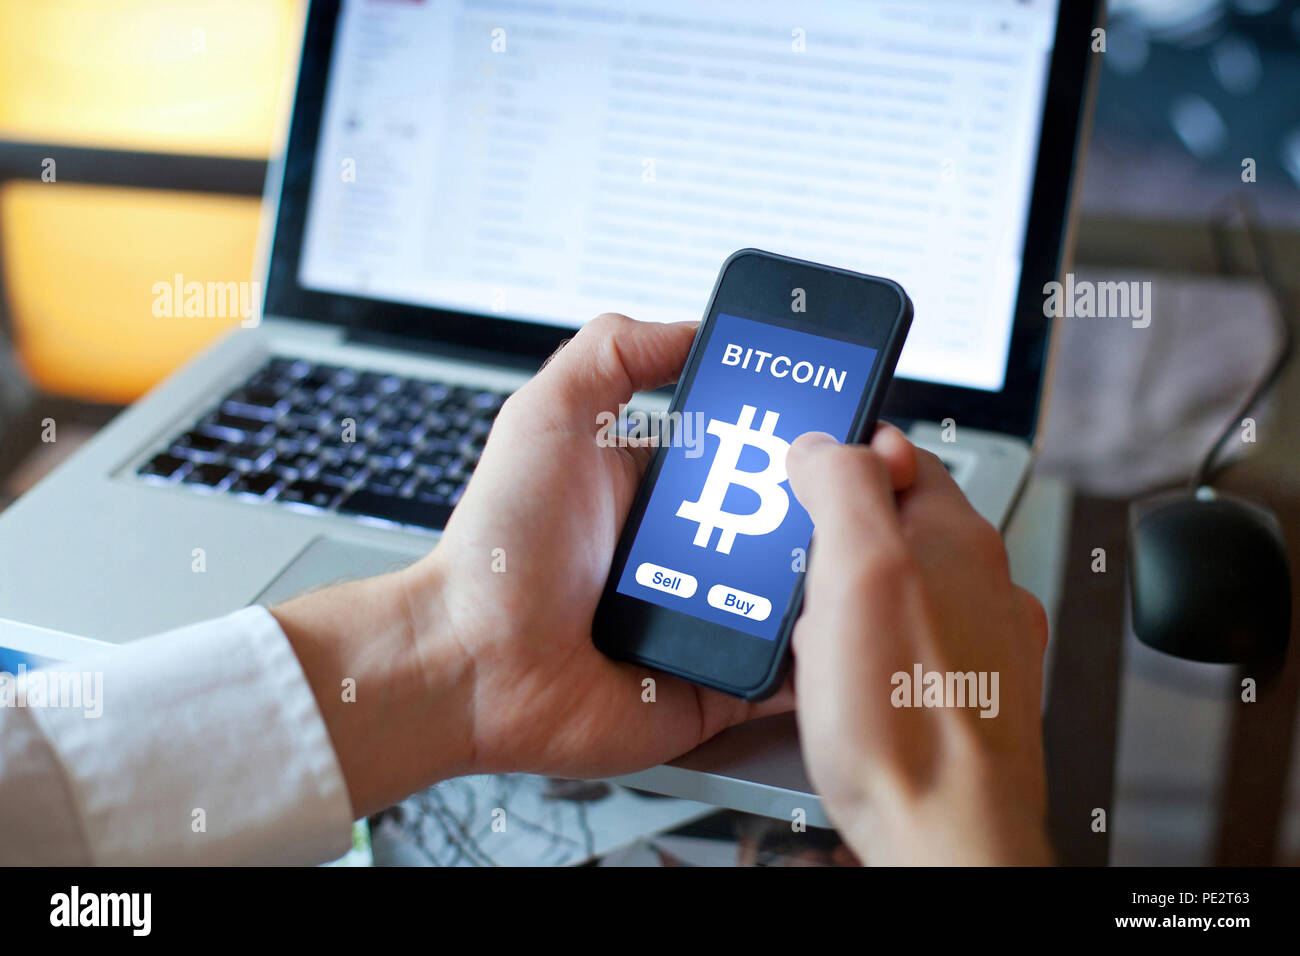 Crypto bitcoin, la monnaie porte-monnaie mobile pour cryptocurrency Photo Stock